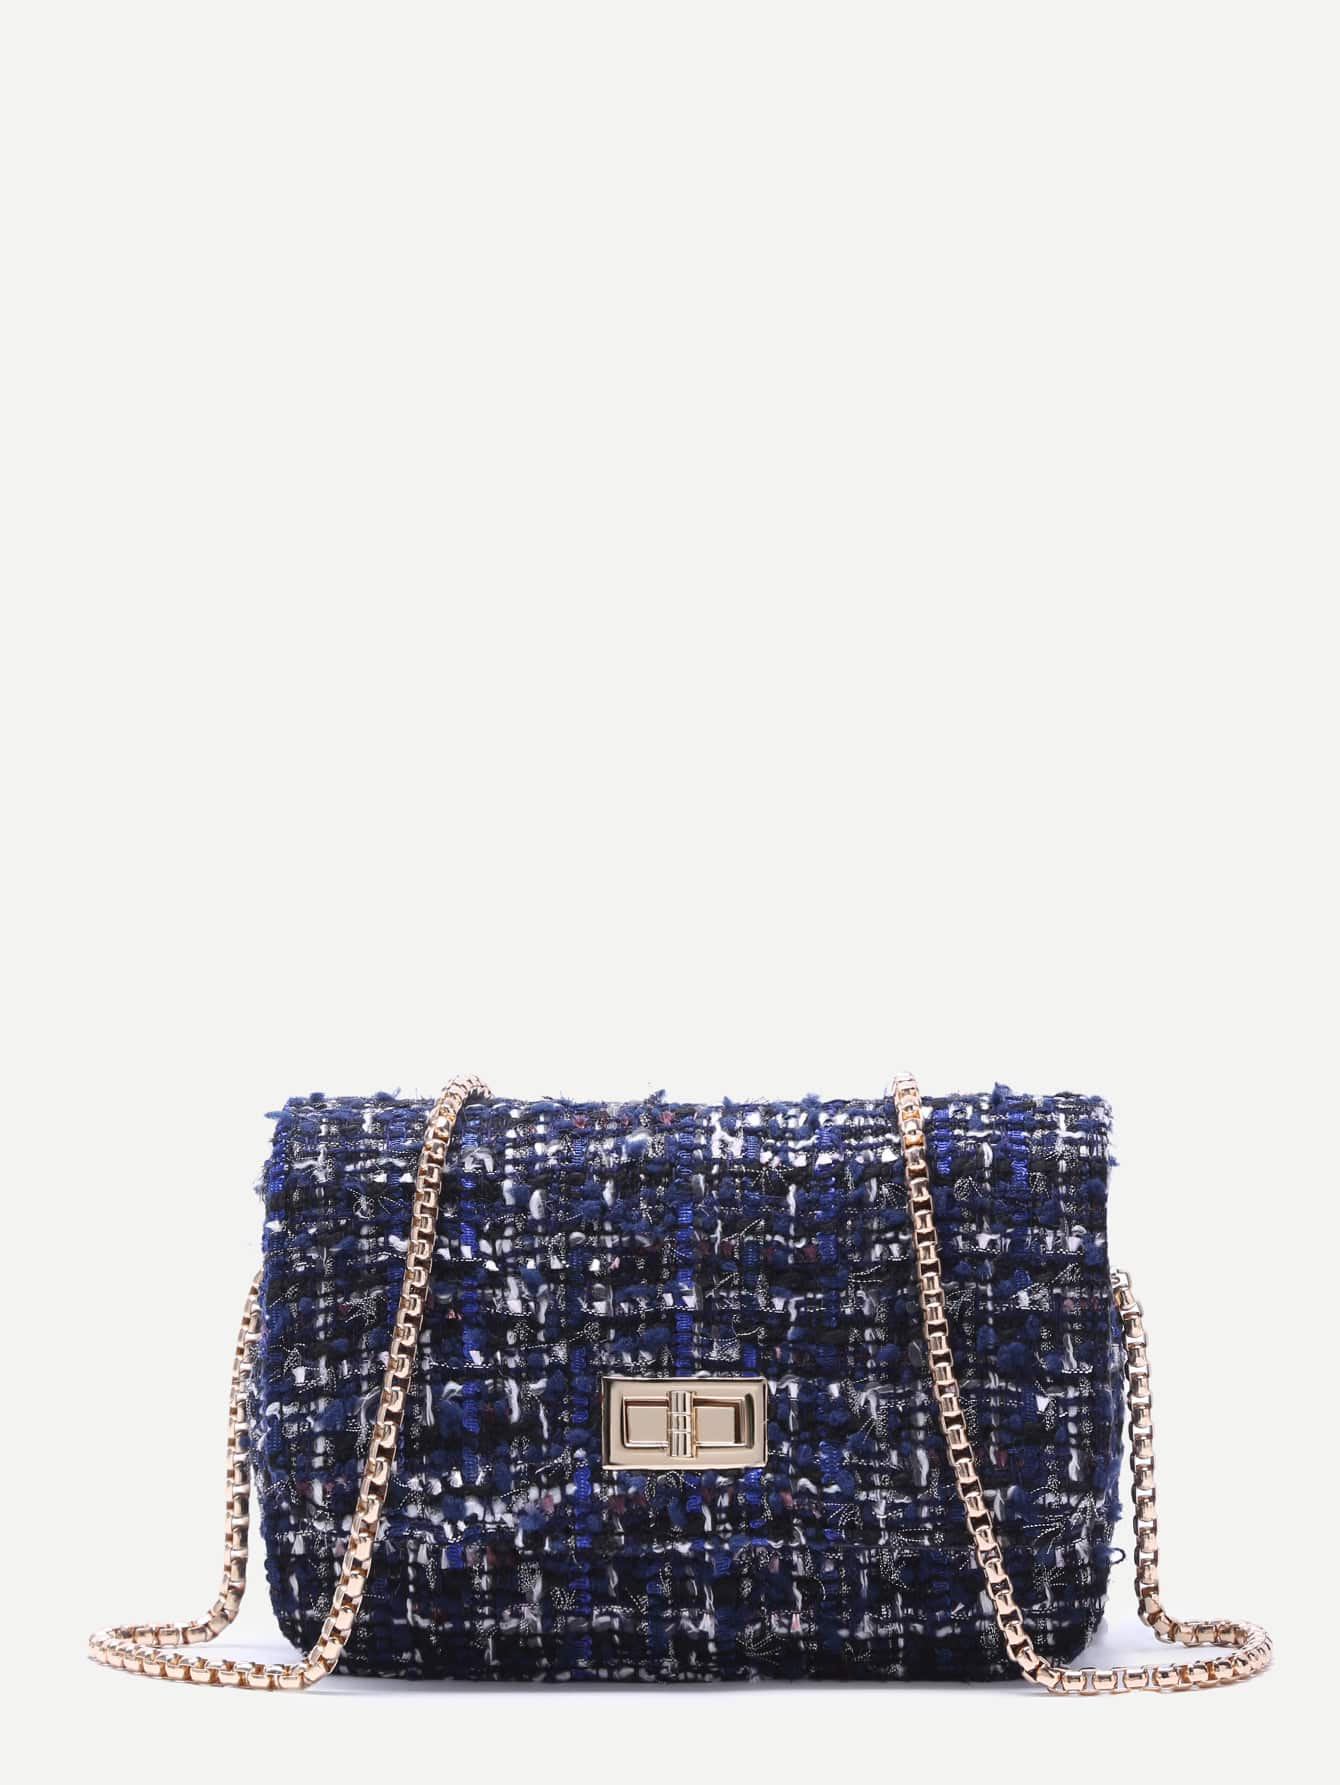 Royal Blue Woolen Box Bag With Chain Strap new bag strap chain wallet handle purse acrylic resin strap chain strap replaced bag strap bag spare parts